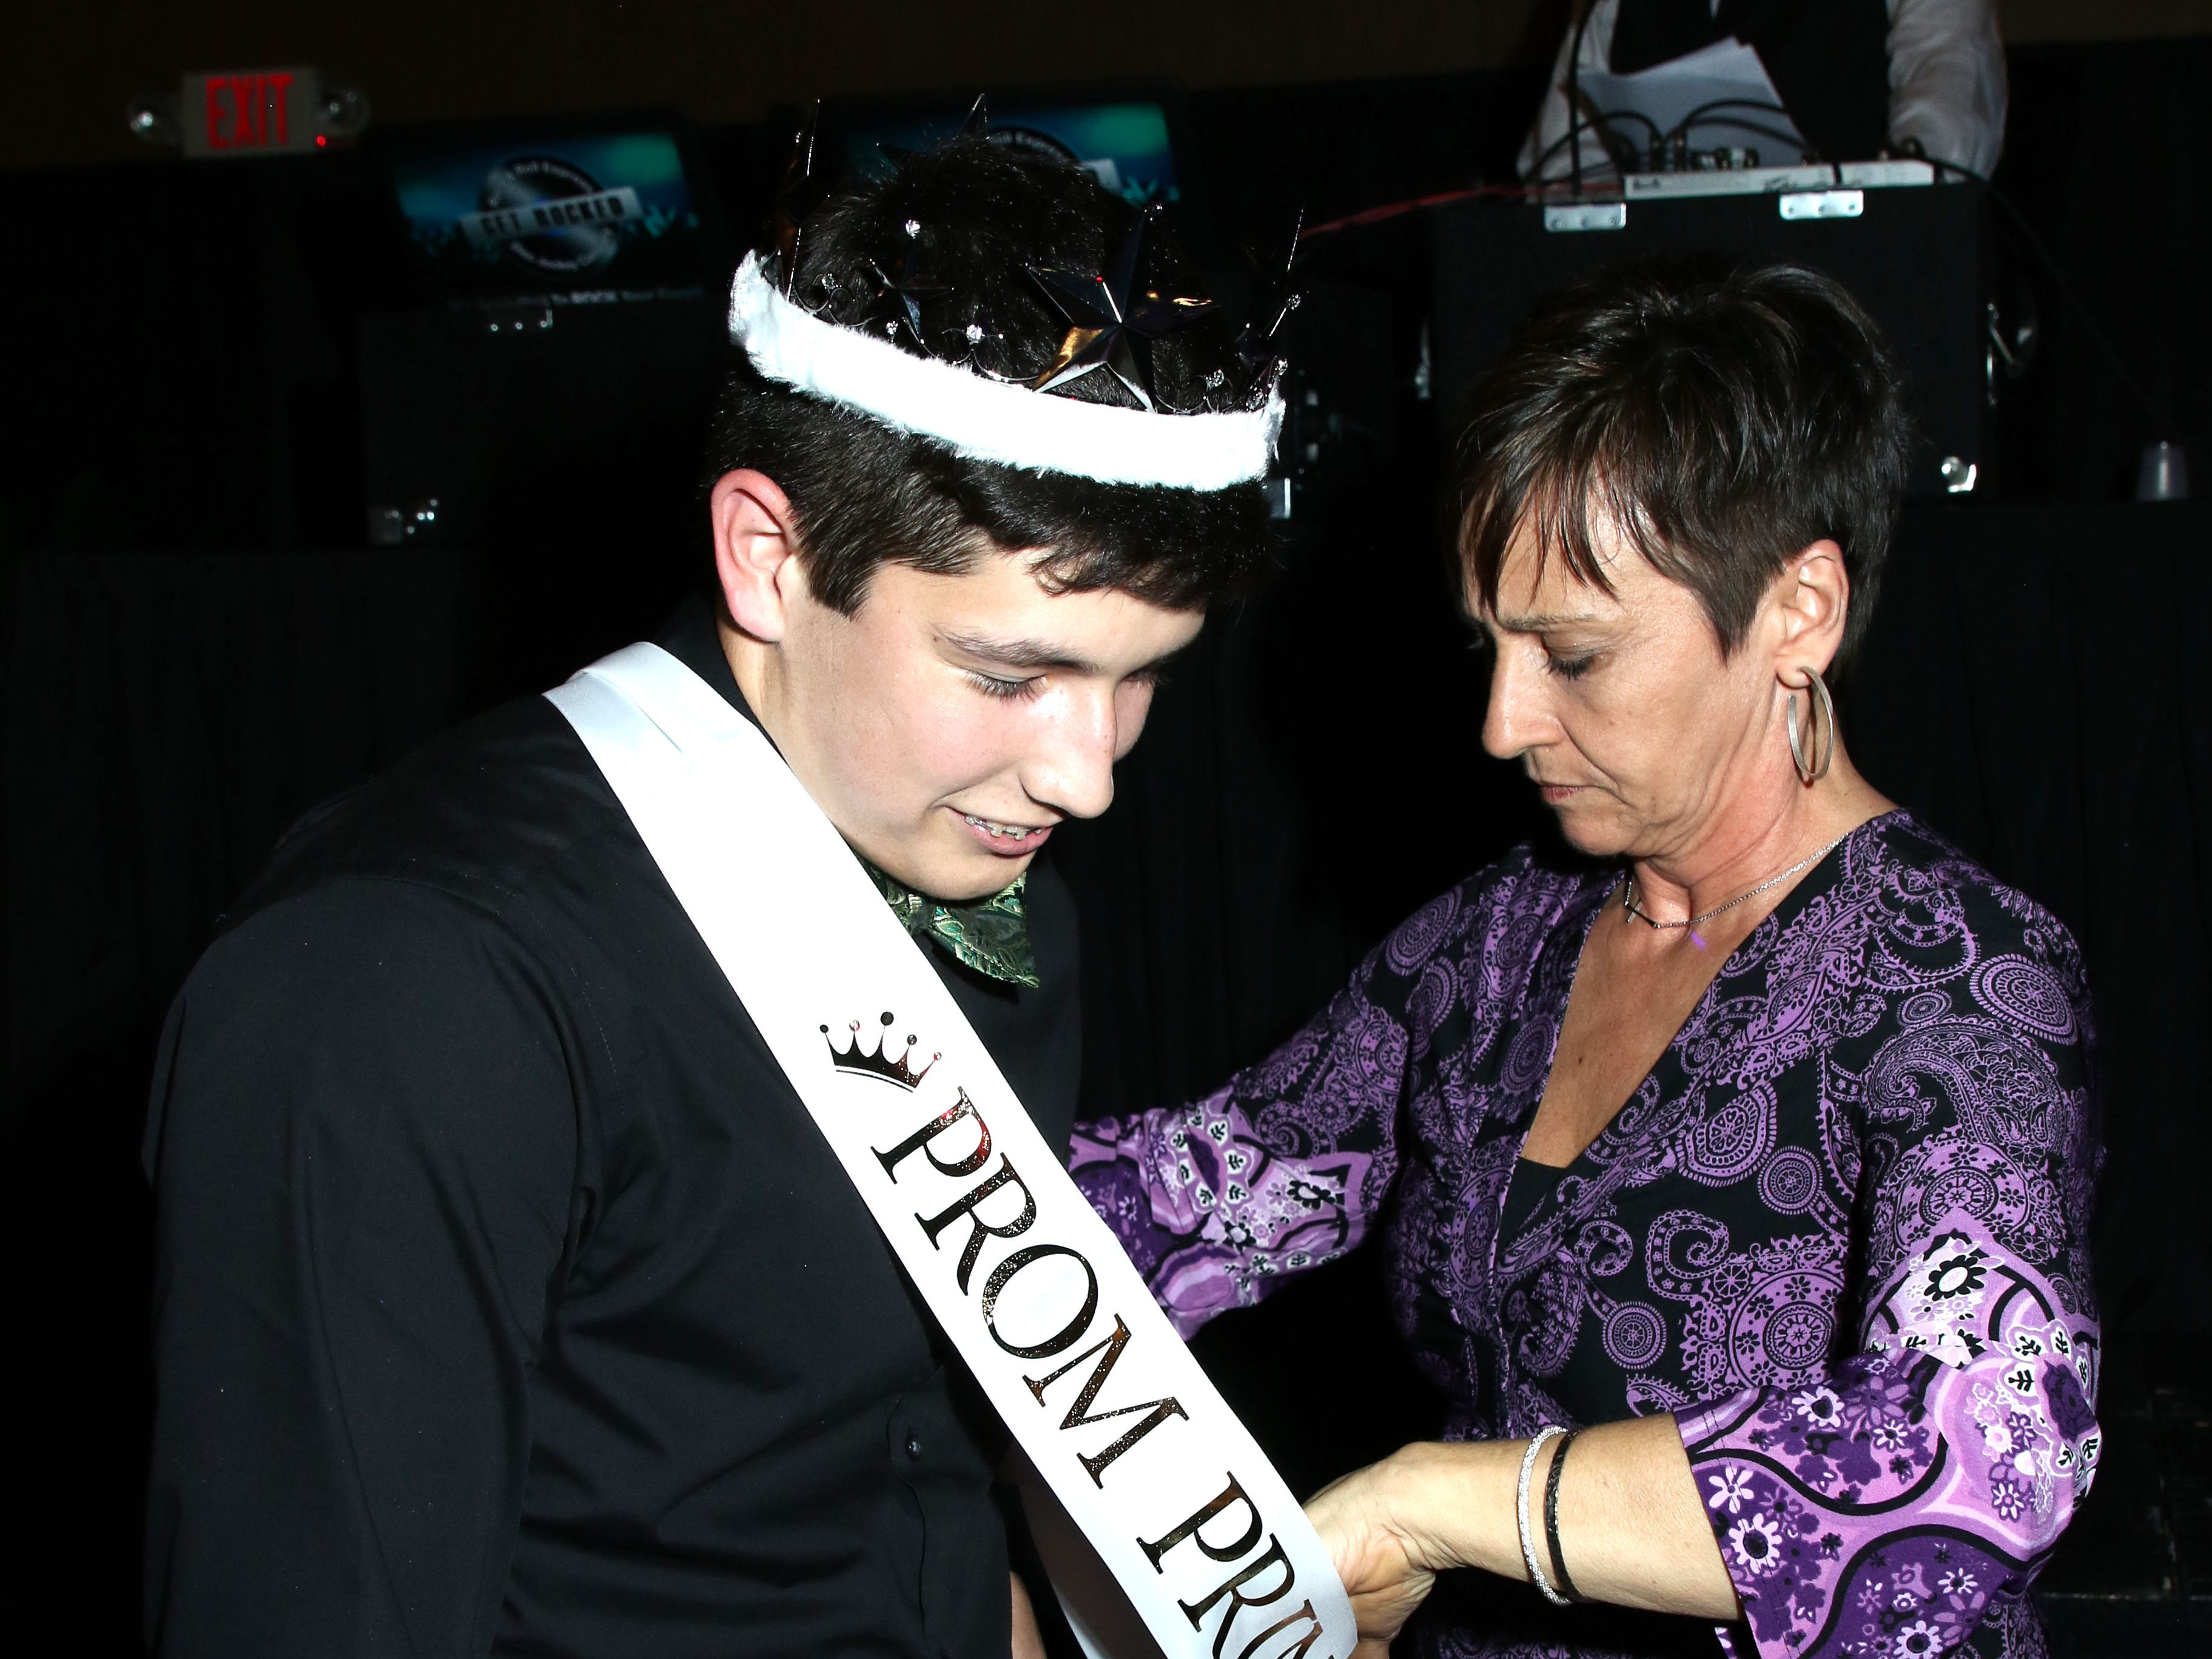 Zayne Manning was crowned Prince. Port Clinton's 2019 Prom was held Saturday, April 27th at Lyman Harbor in Sandusky.